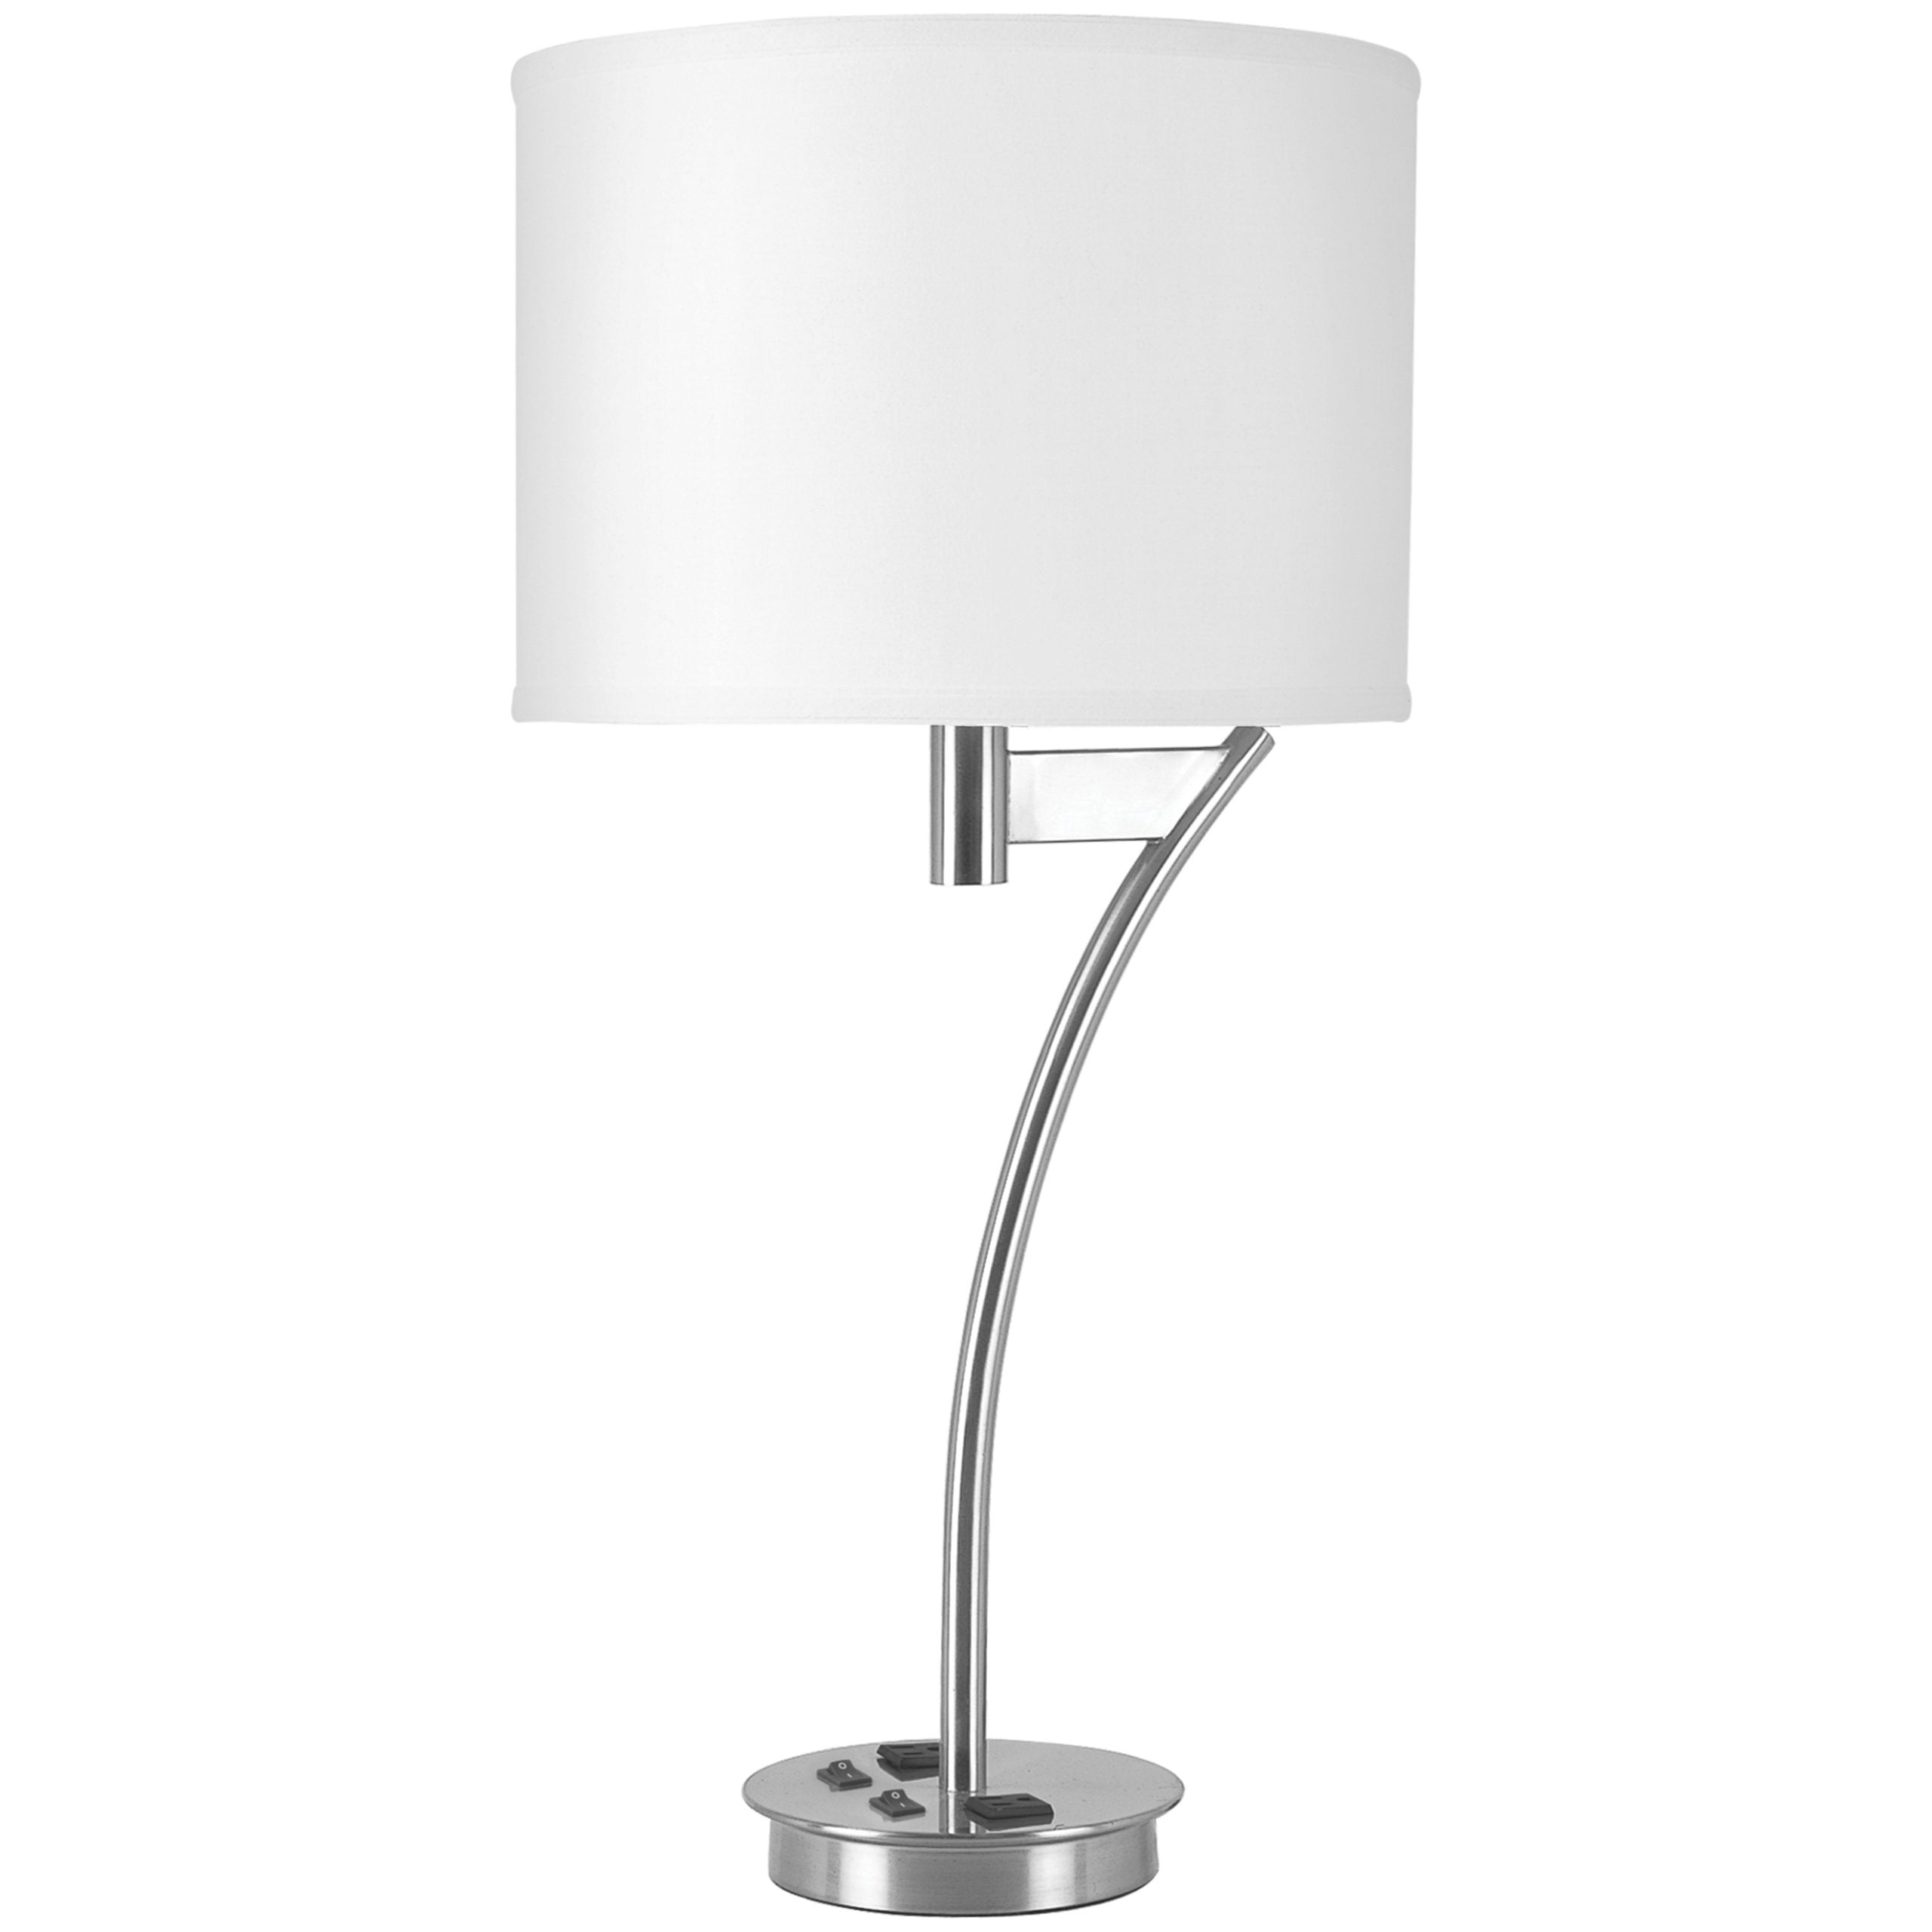 Corbel Twin Table Lamp with 2 Outlets